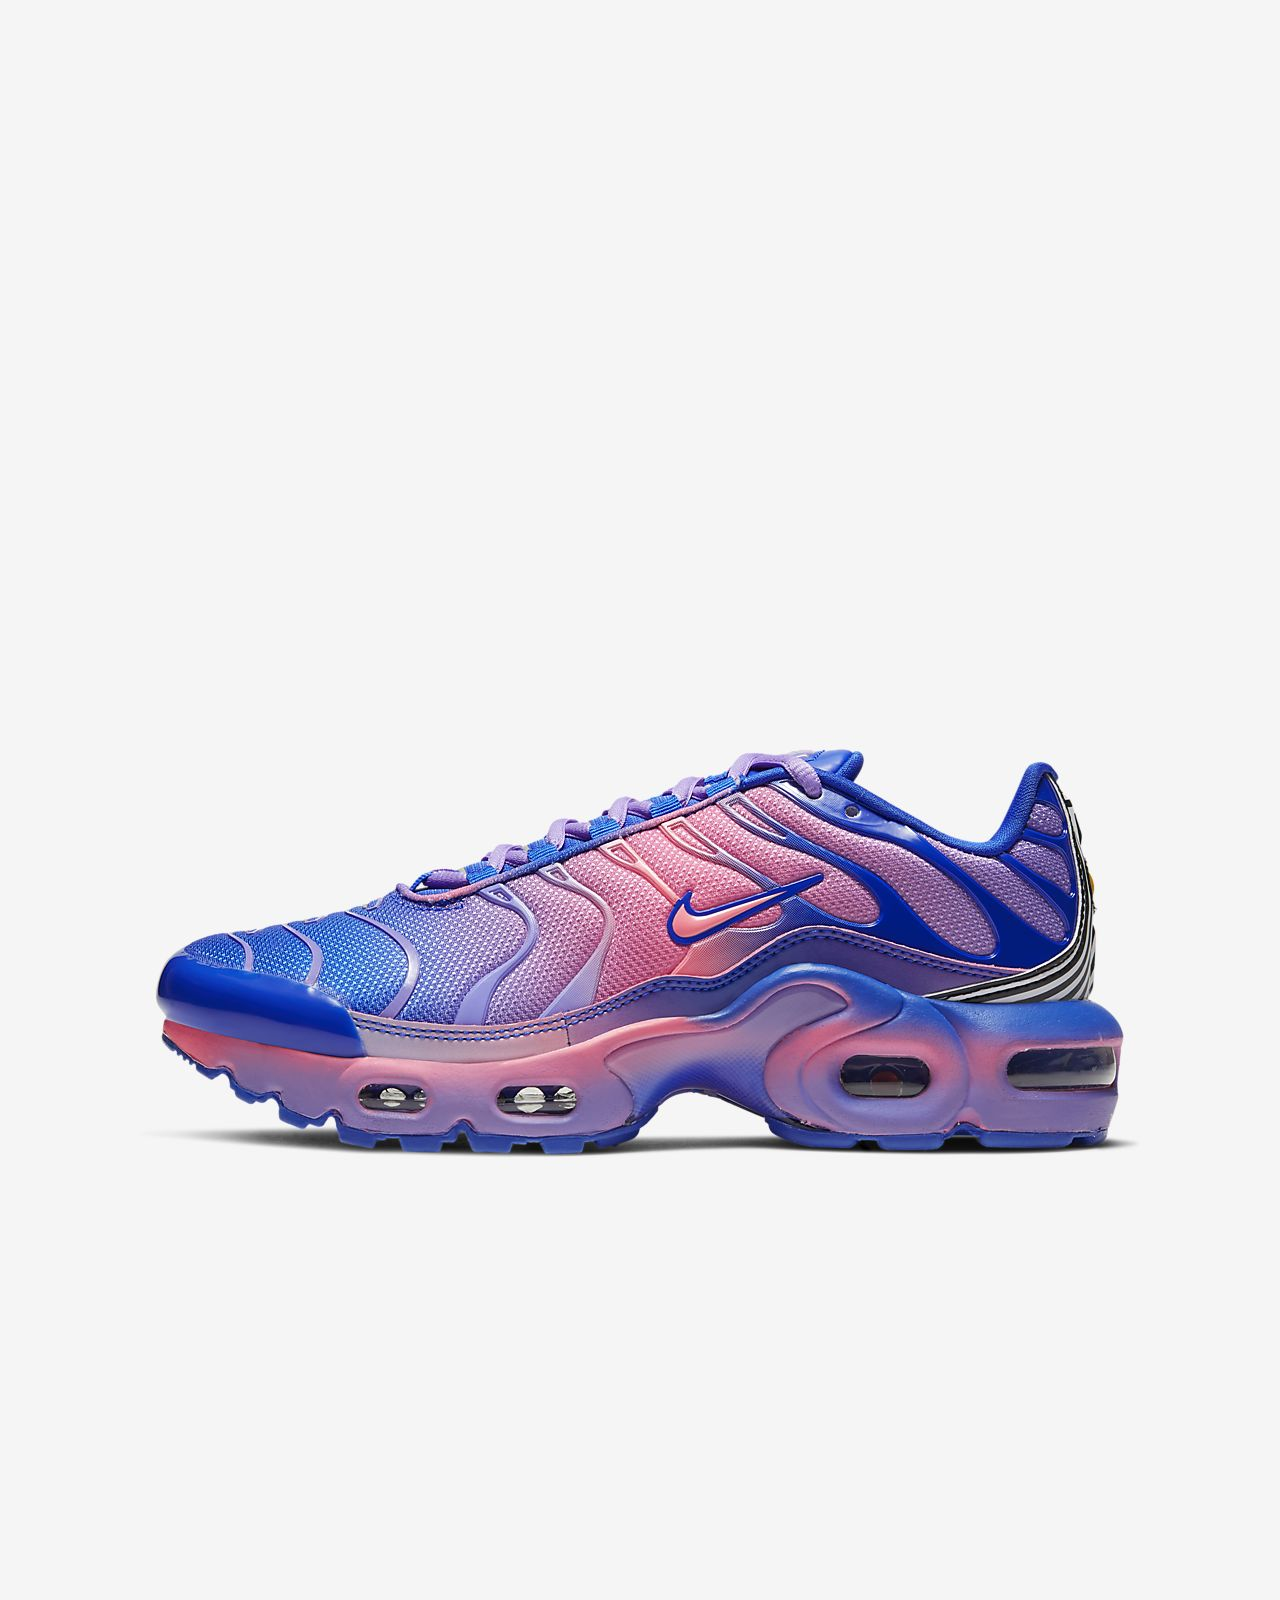 Nike Air Max Plus QS Big Kids' Shoe